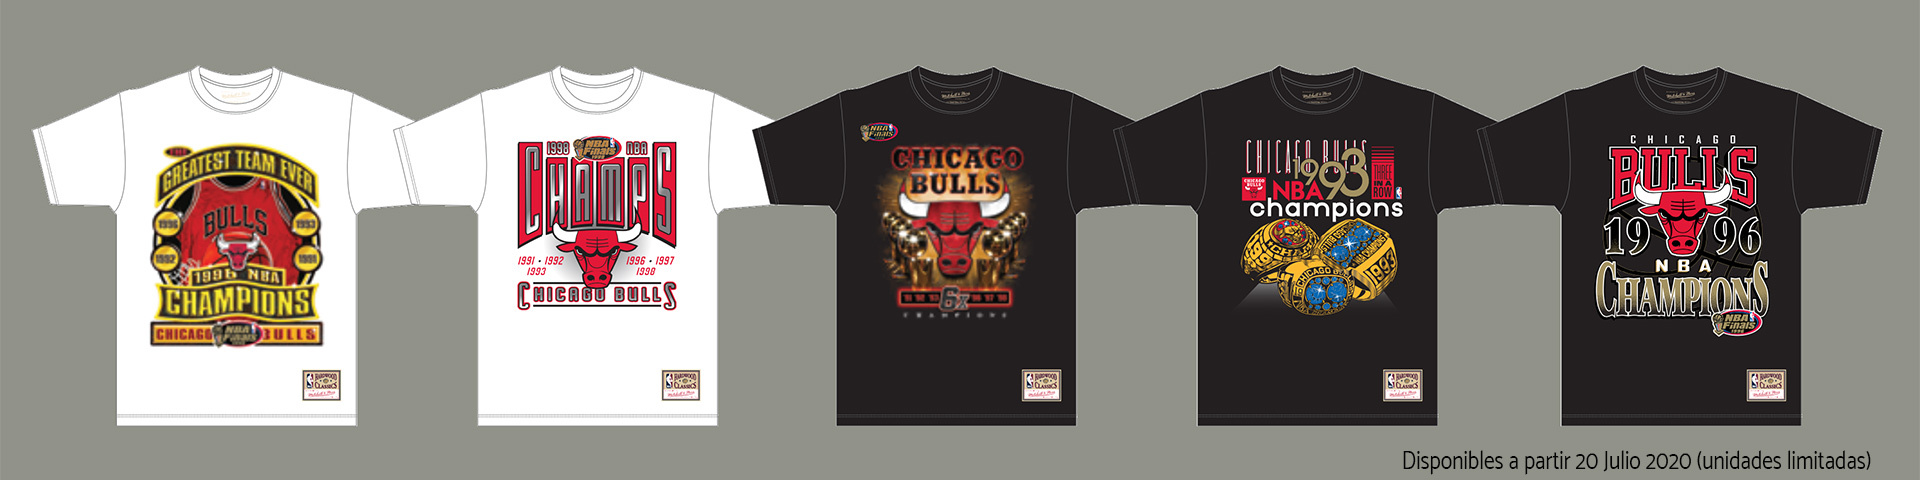 Last Dance. Chicago Bulls. Retro NBA. Colección exclusiva camisetas Hardwood Class